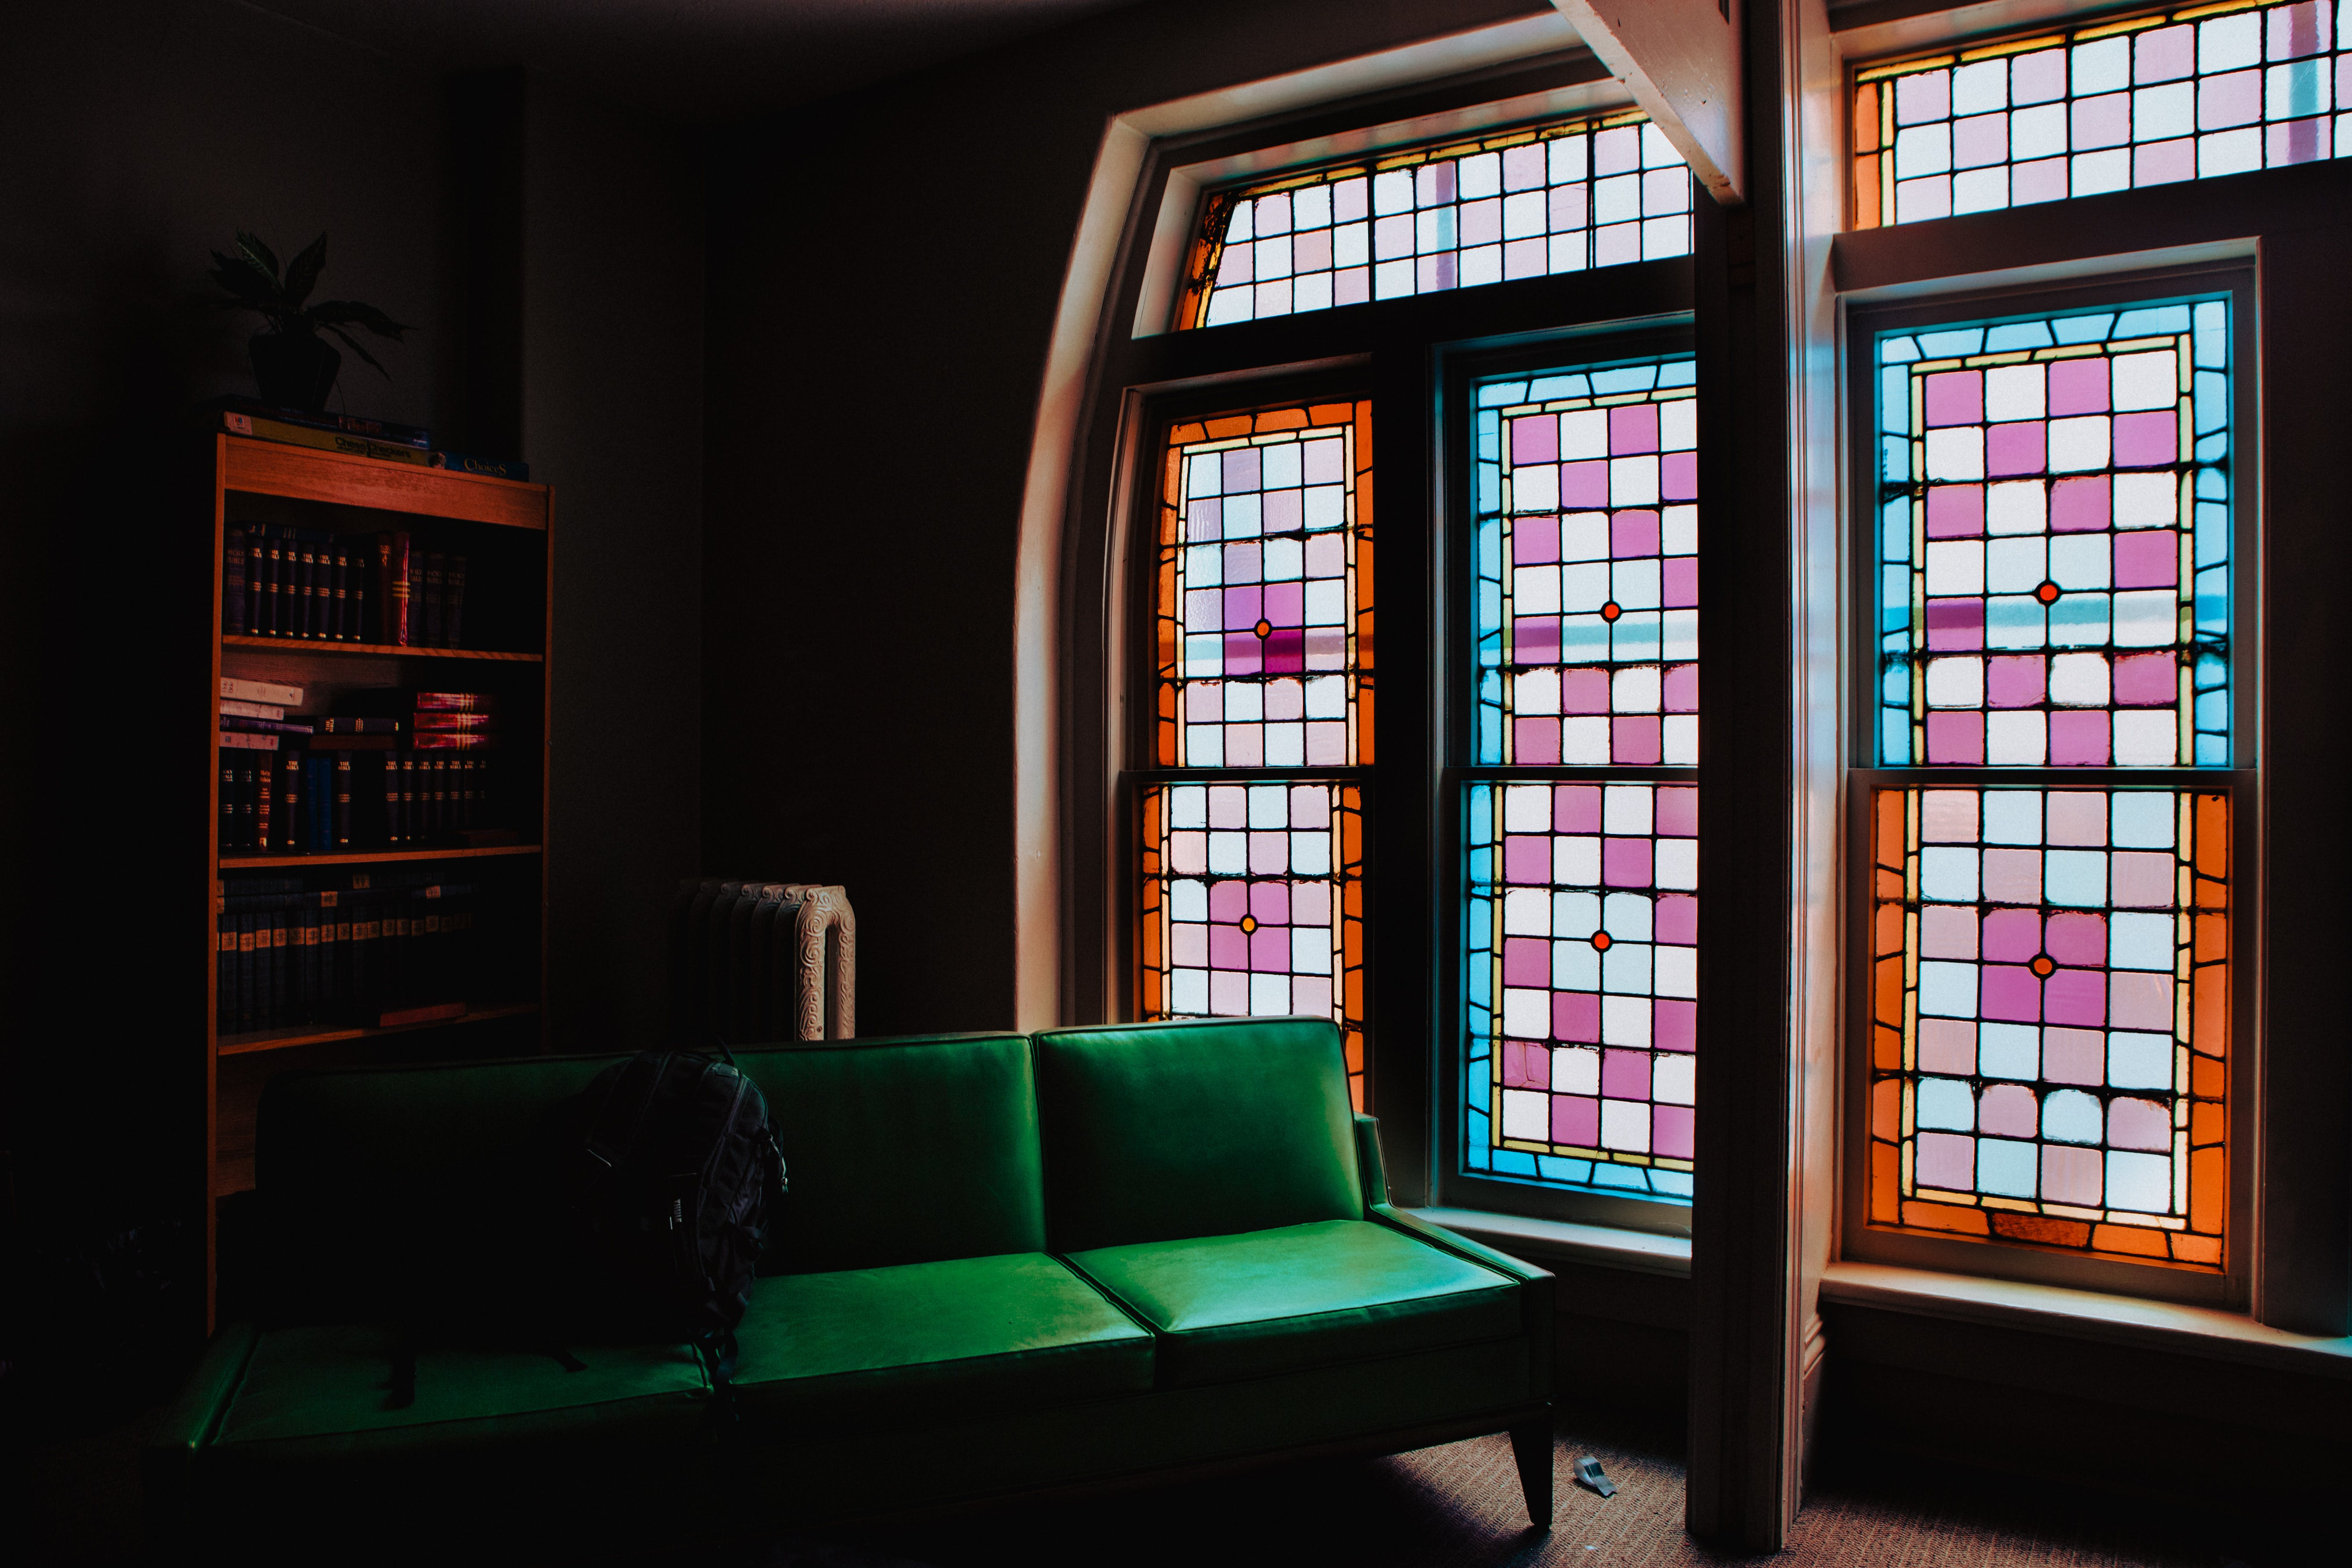 Green Leather Couch Beside of Stained Glass Window